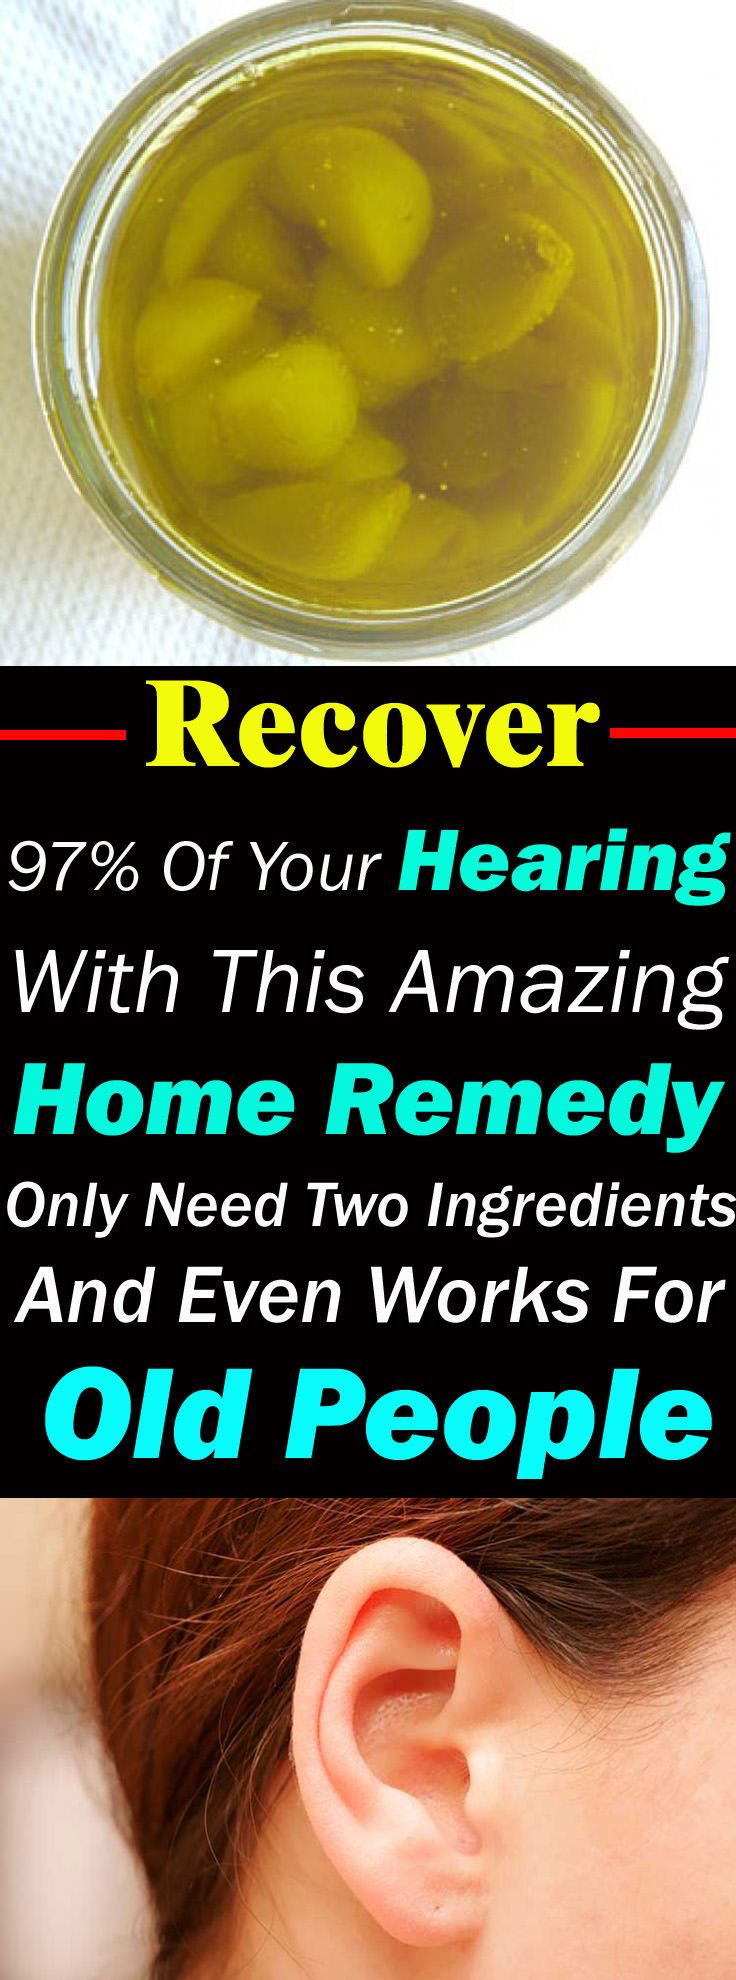 Recover 97% of Your Hearing with This Miraculous 2 Ingredient Recipe